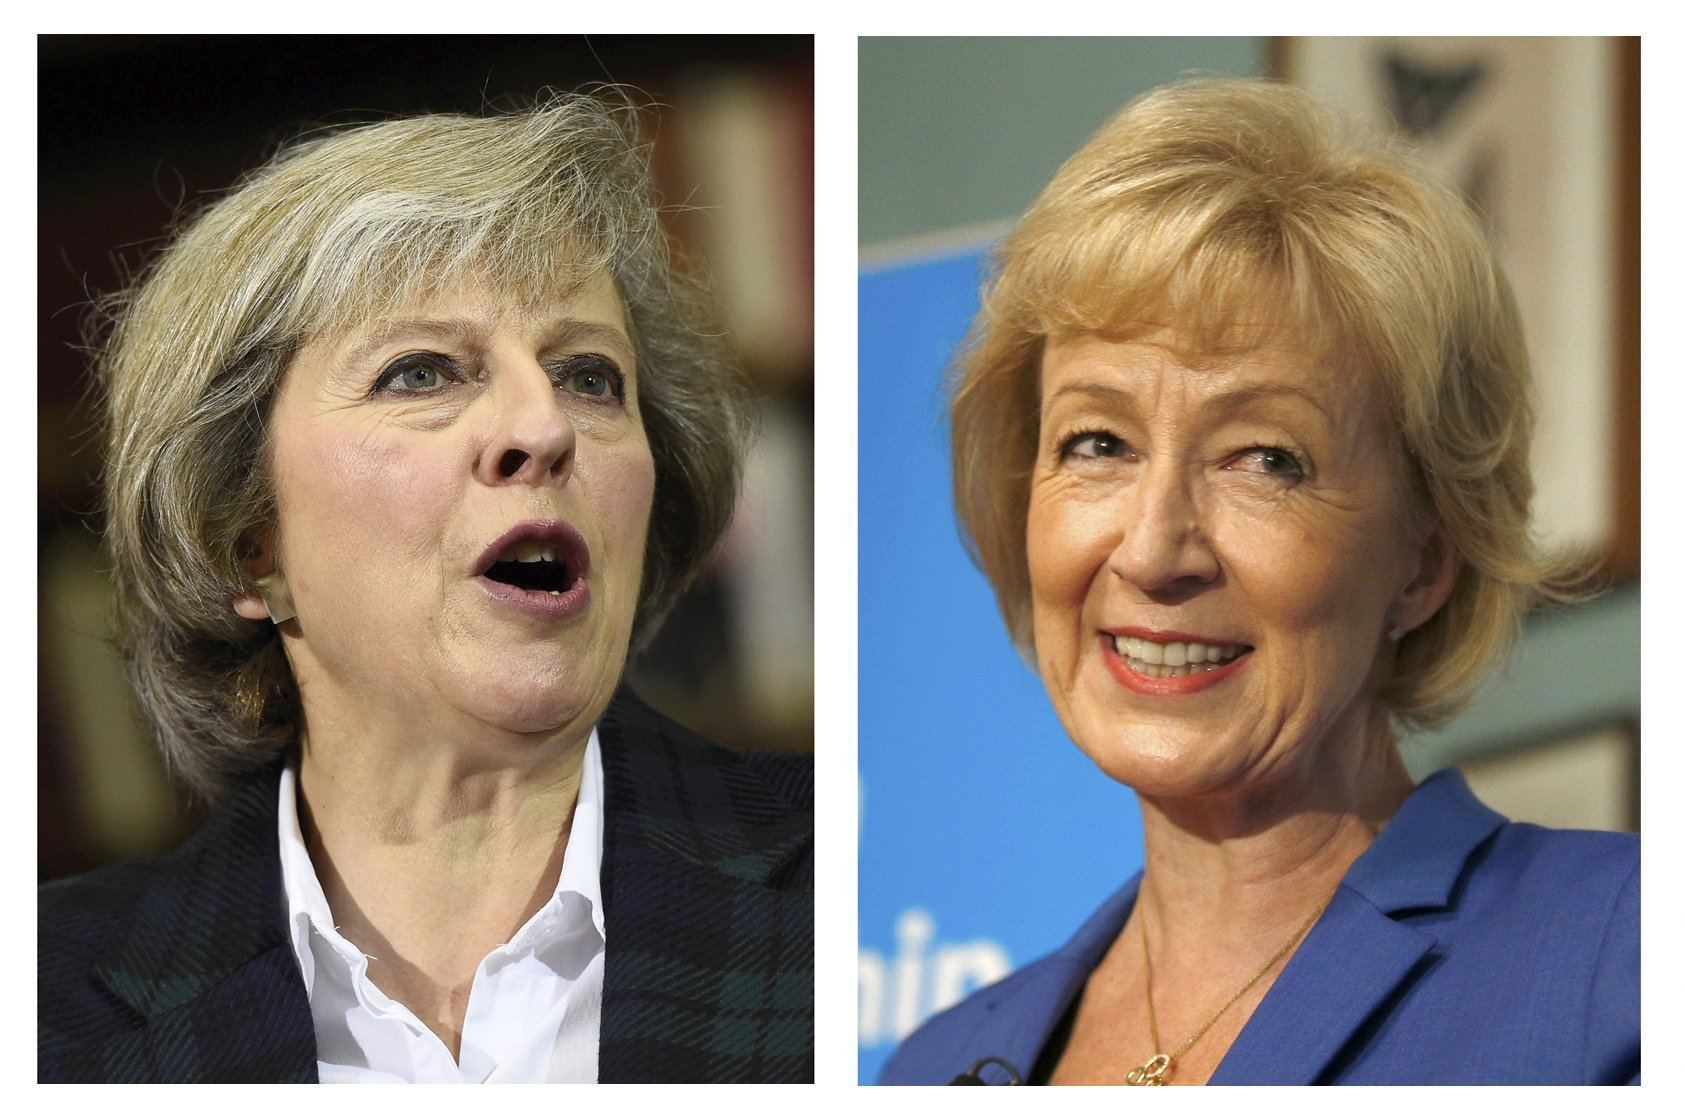 La ministra Theresa May y la secretaria de Estado Andrea Leadsom